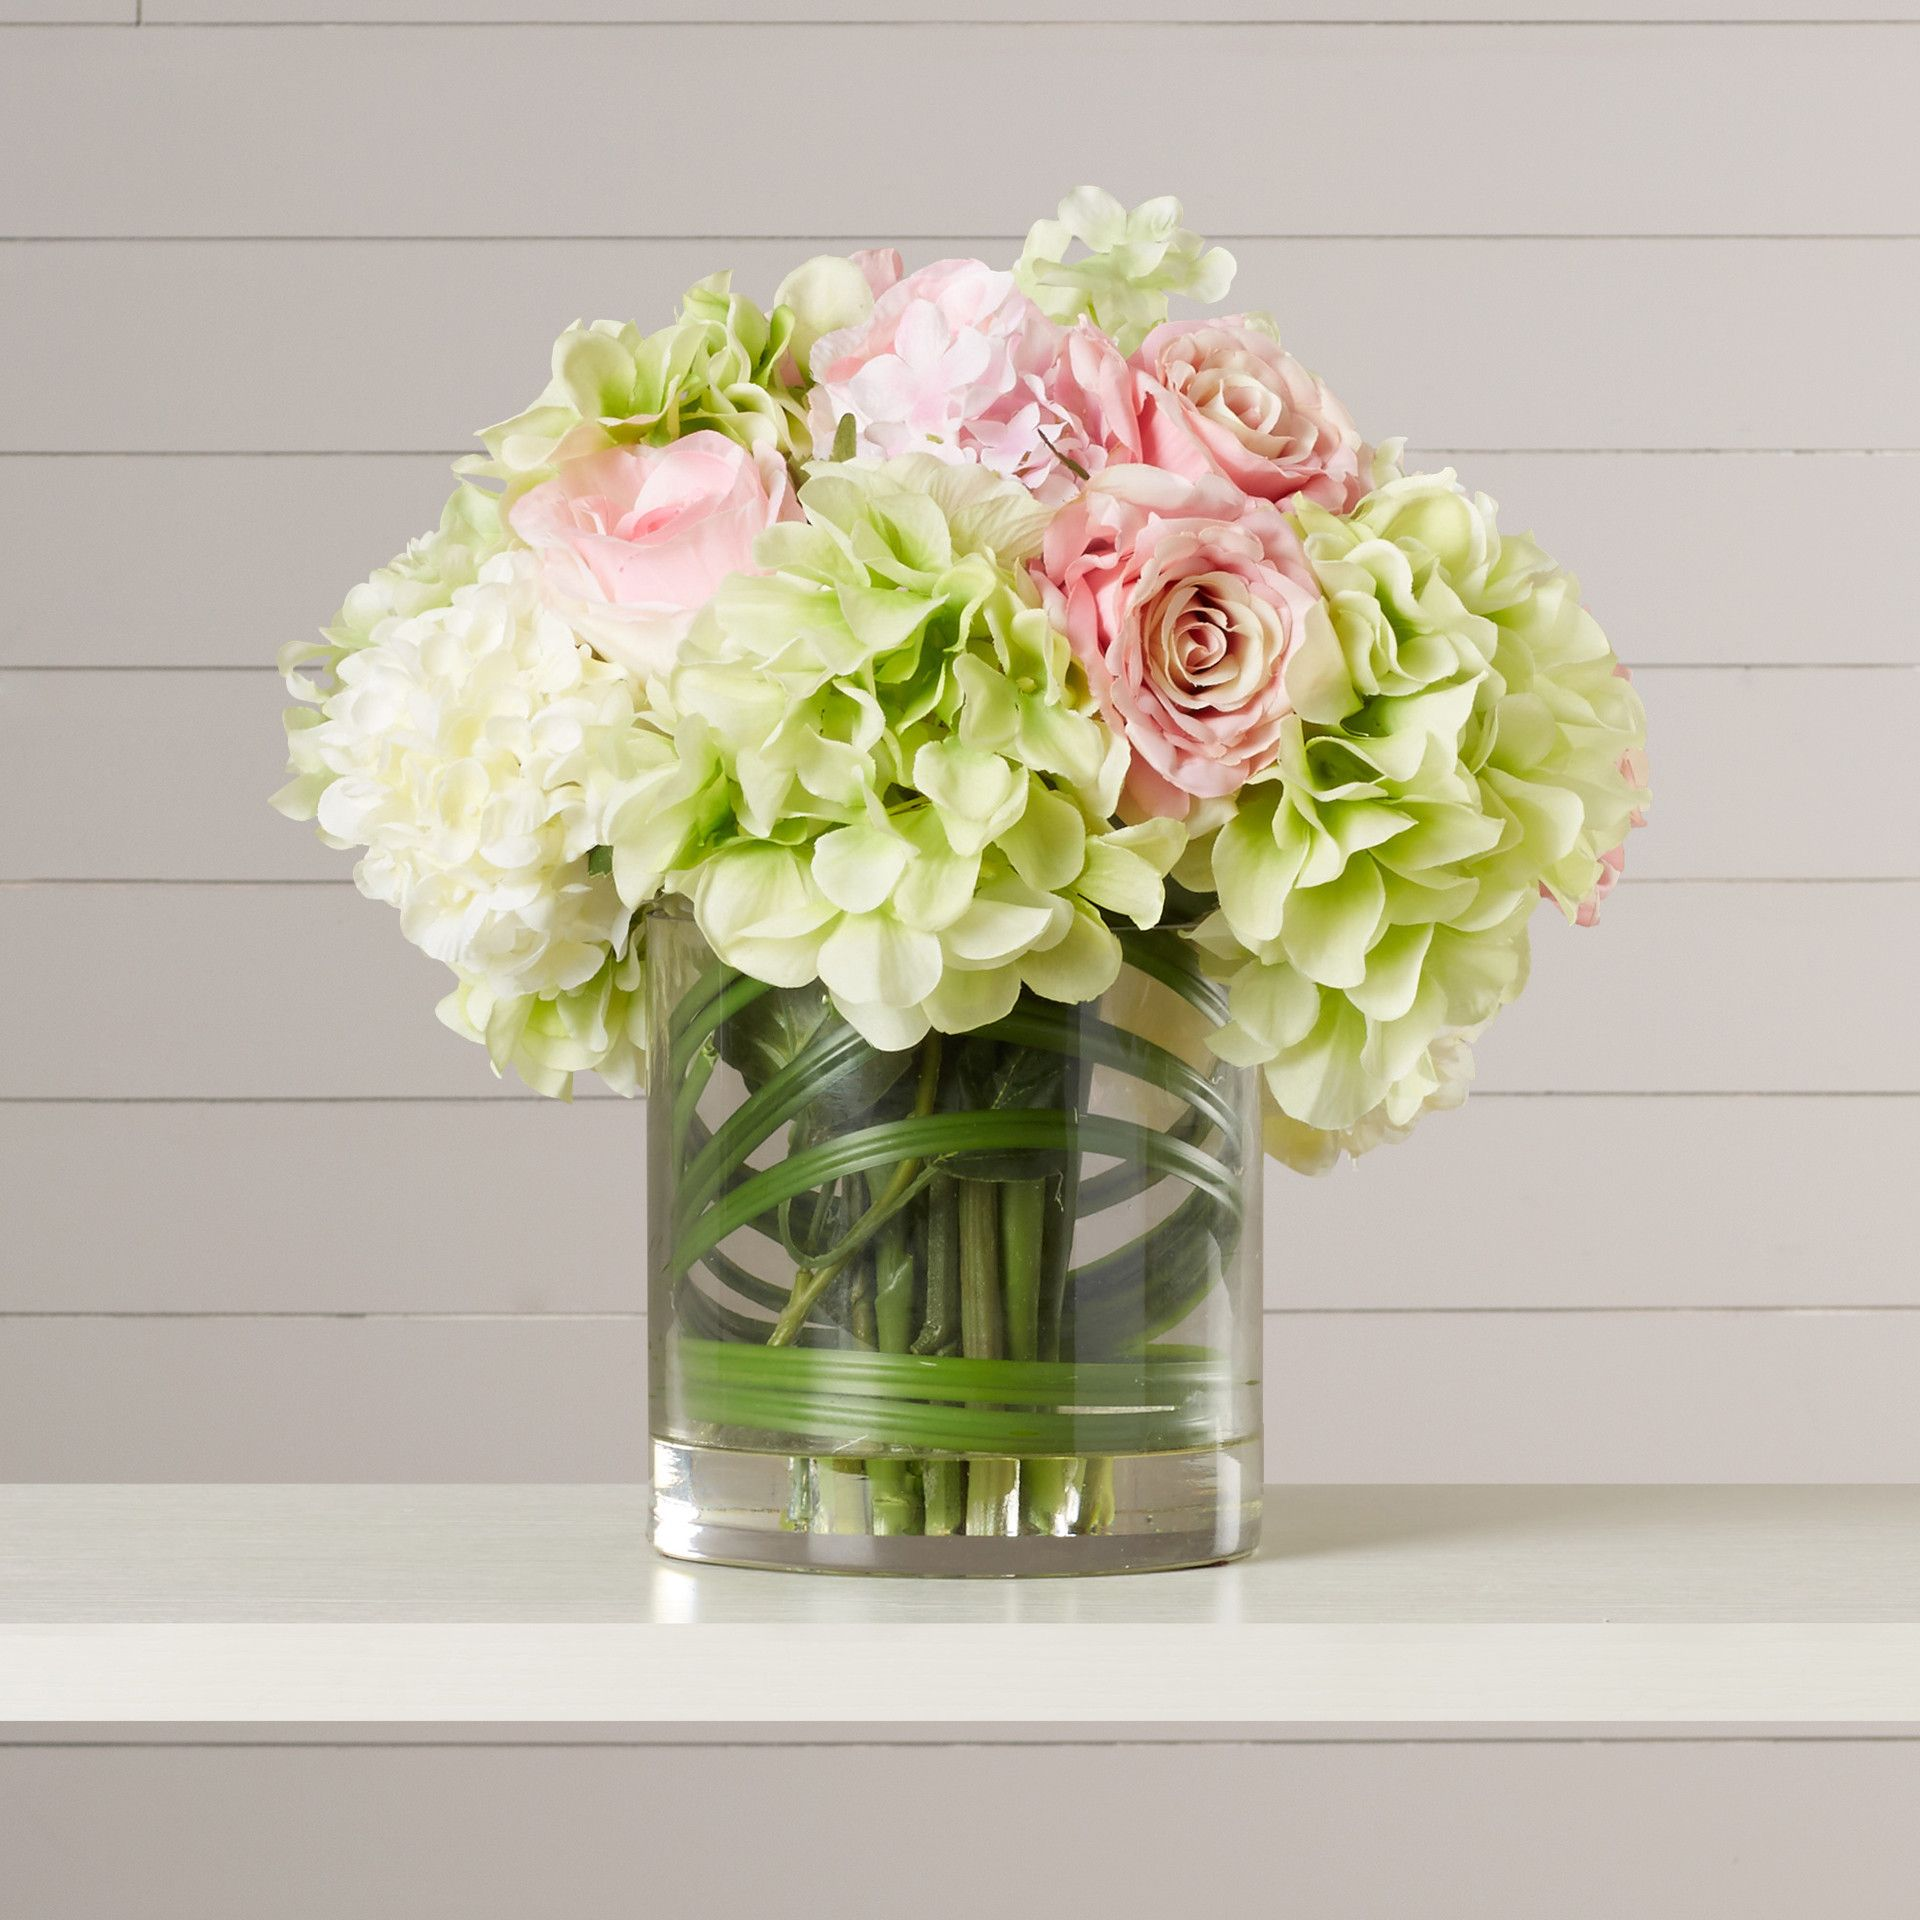 August Grove Spring Hydrangeas And Roses In Vase Reviews Wayfair Faux Flowers Faux Hydrangea Hydrangea Arrangements